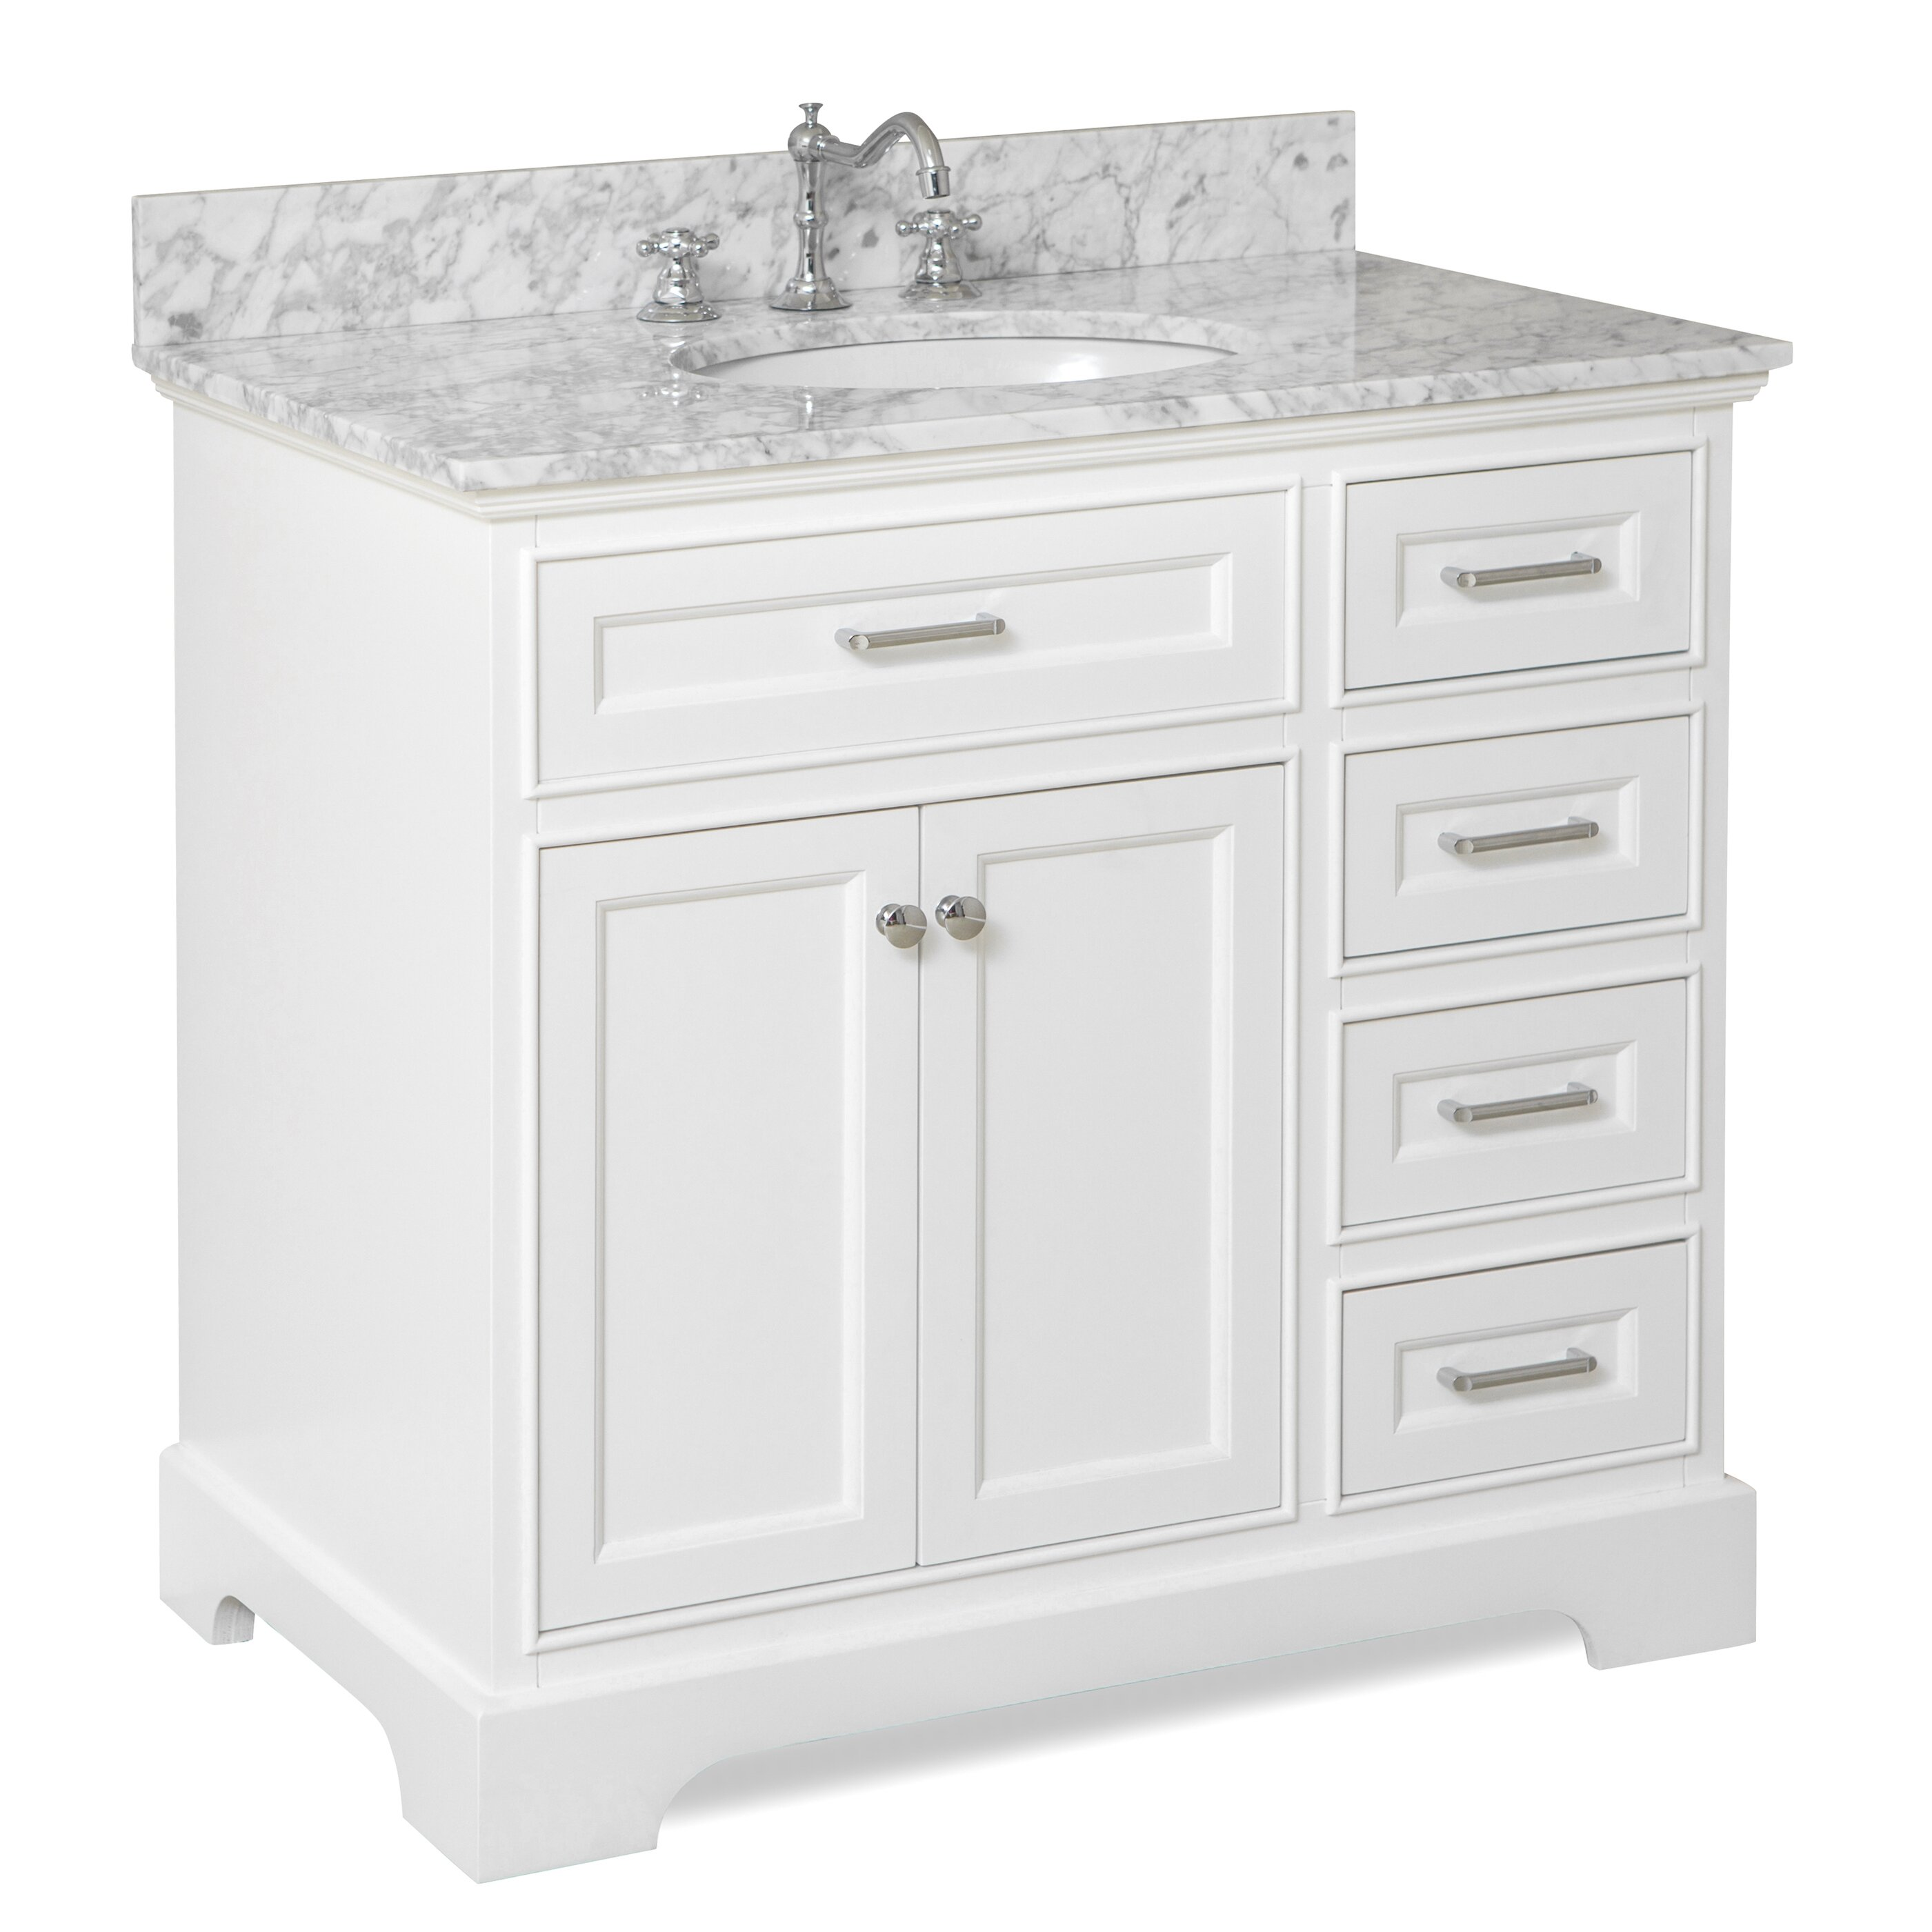 "Kitchen Collection: KBC Aria 36"" Single Vanity Set & Reviews"